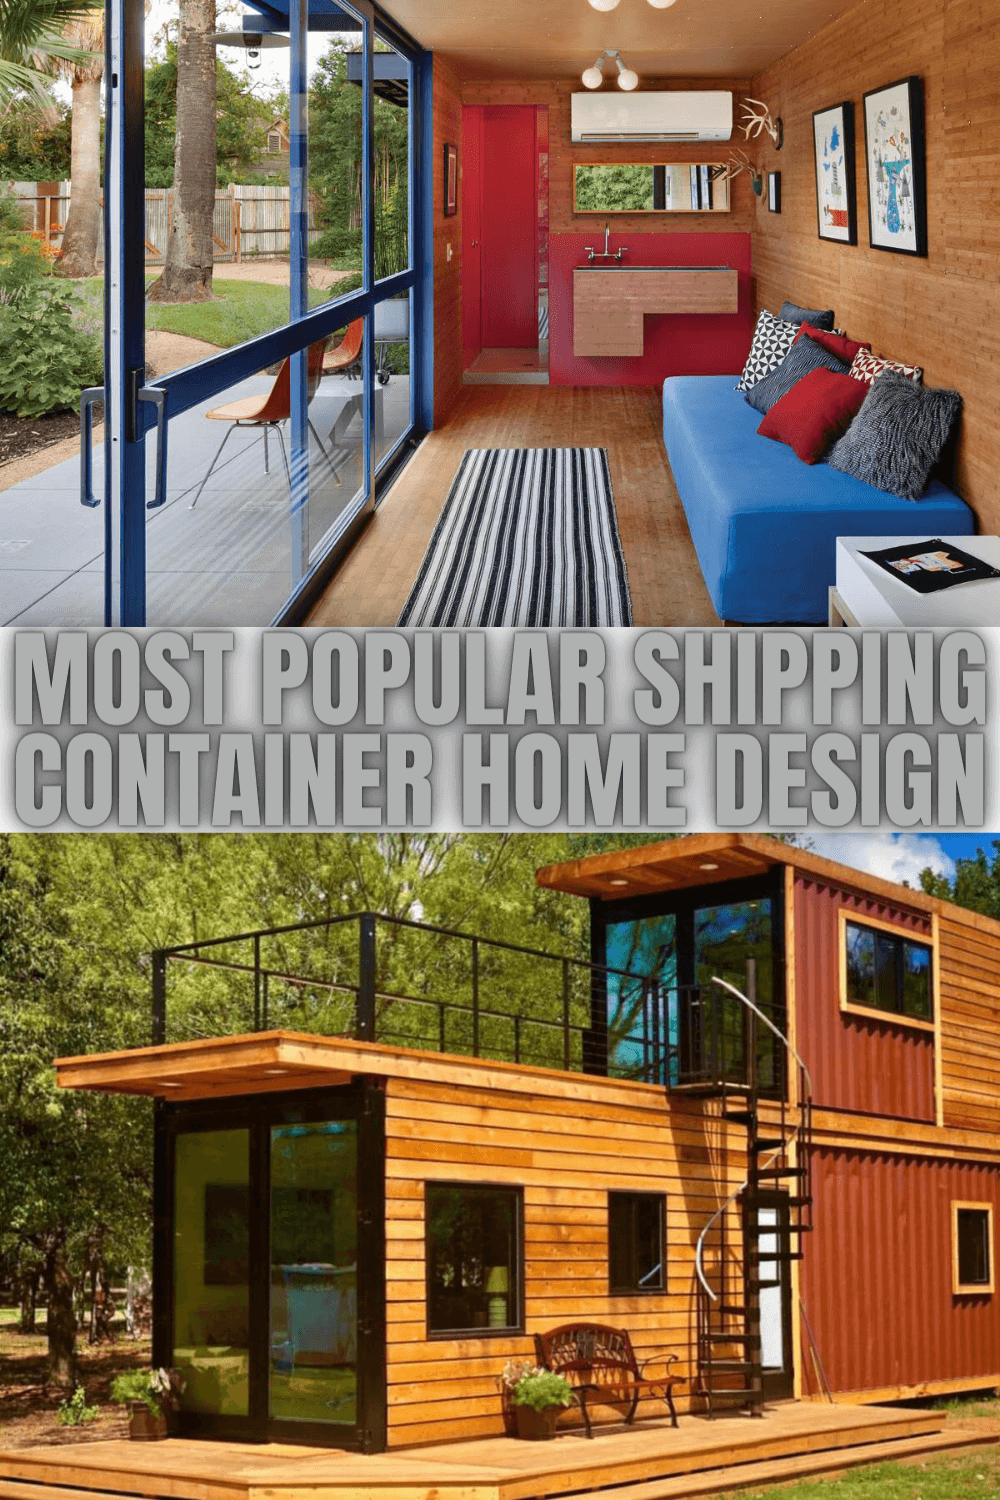 MOST POPULAR SHIPPING CONTAINER HOME DESIGN